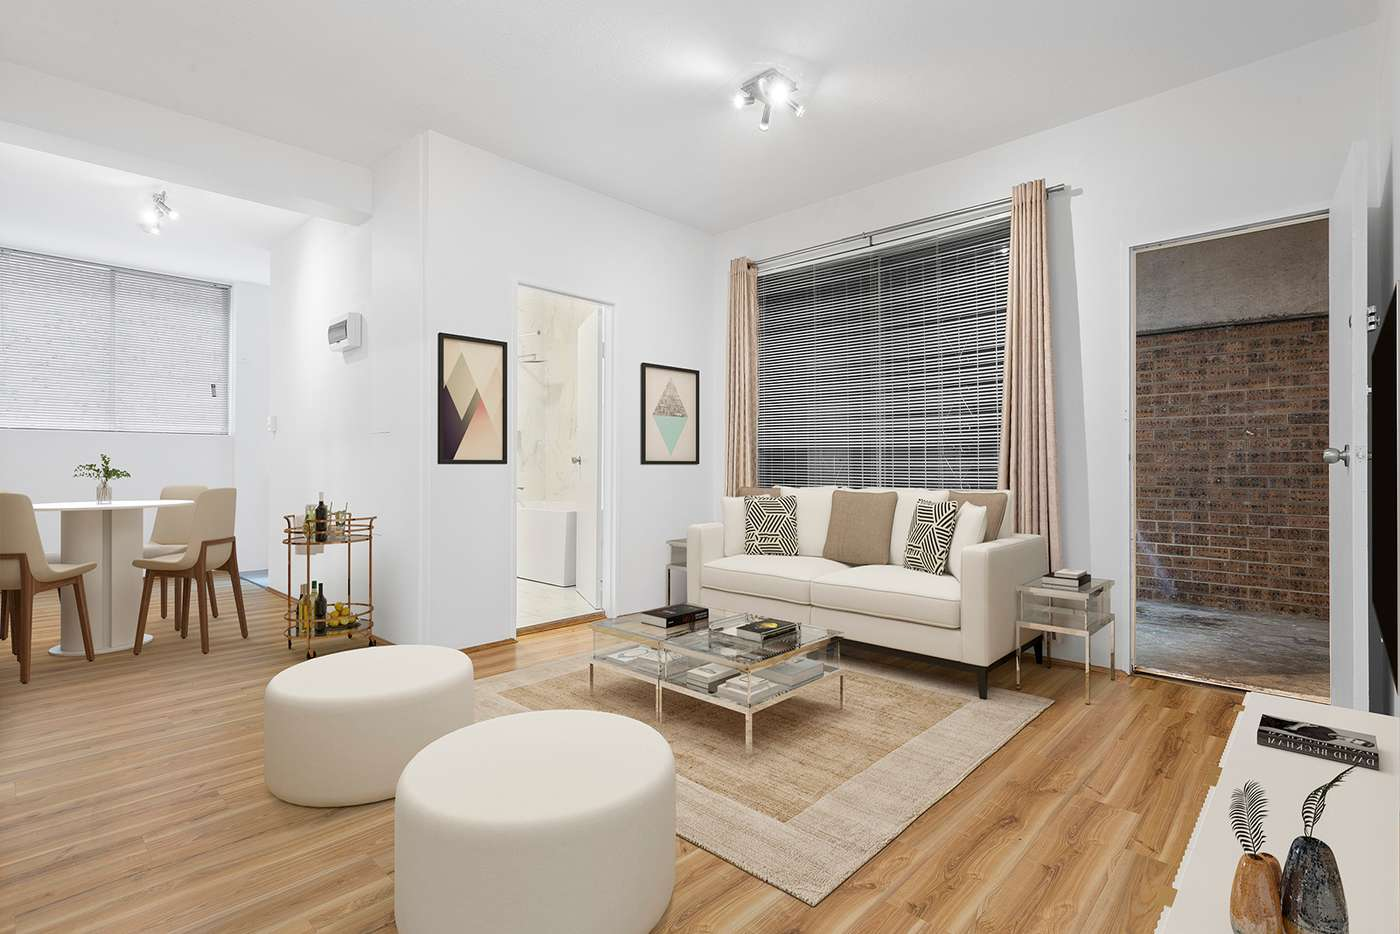 Main view of Homely apartment listing, 10/29 Newland Street, Bondi Junction NSW 2022